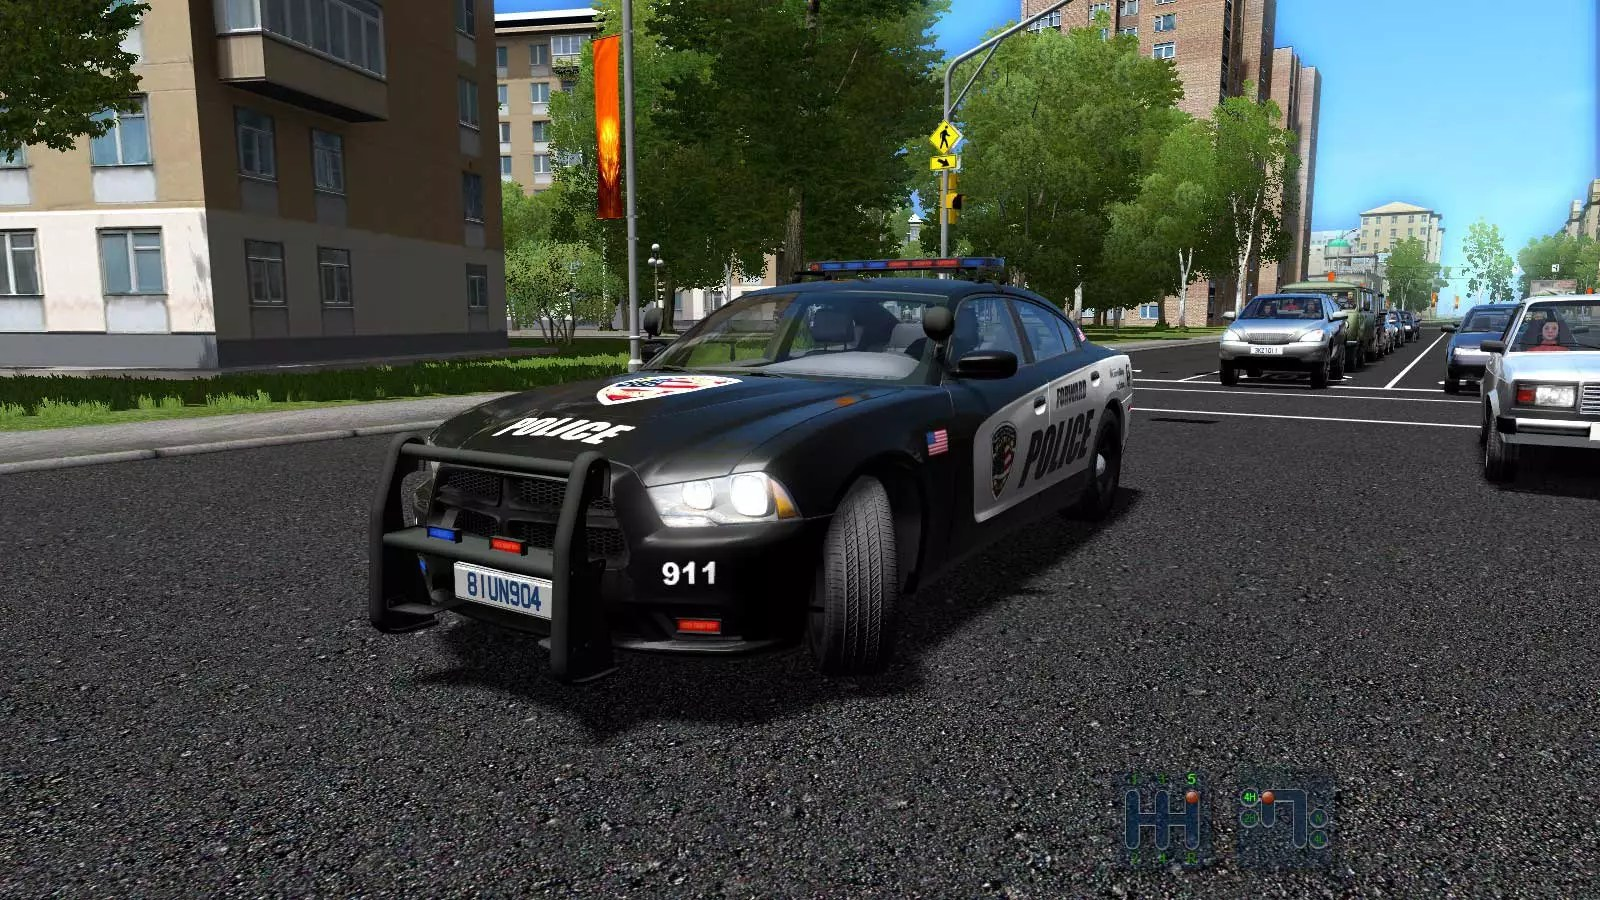 City Car Driving Home Edition 156 Free Download Full